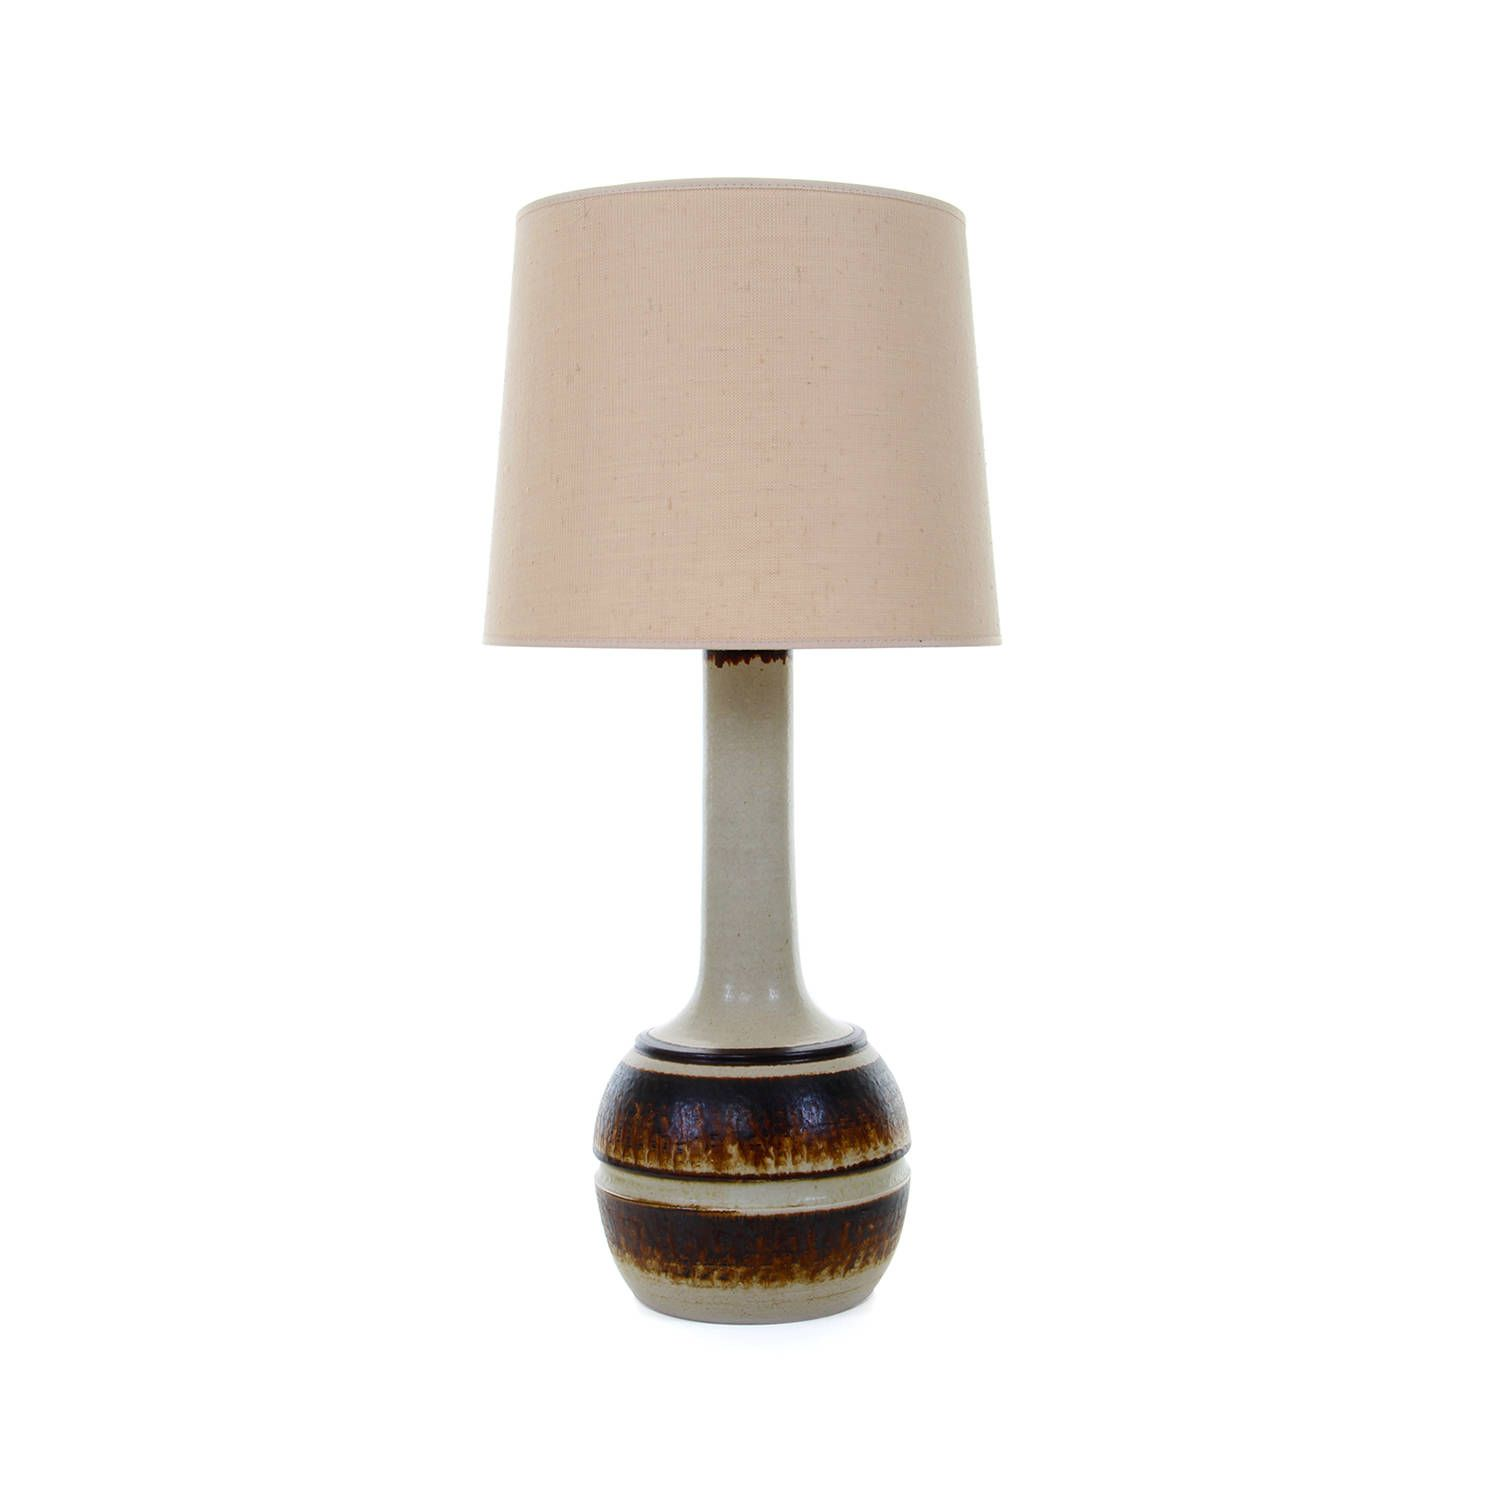 Large Stoneware Table Lamp No 964 By Axella Design 1970s